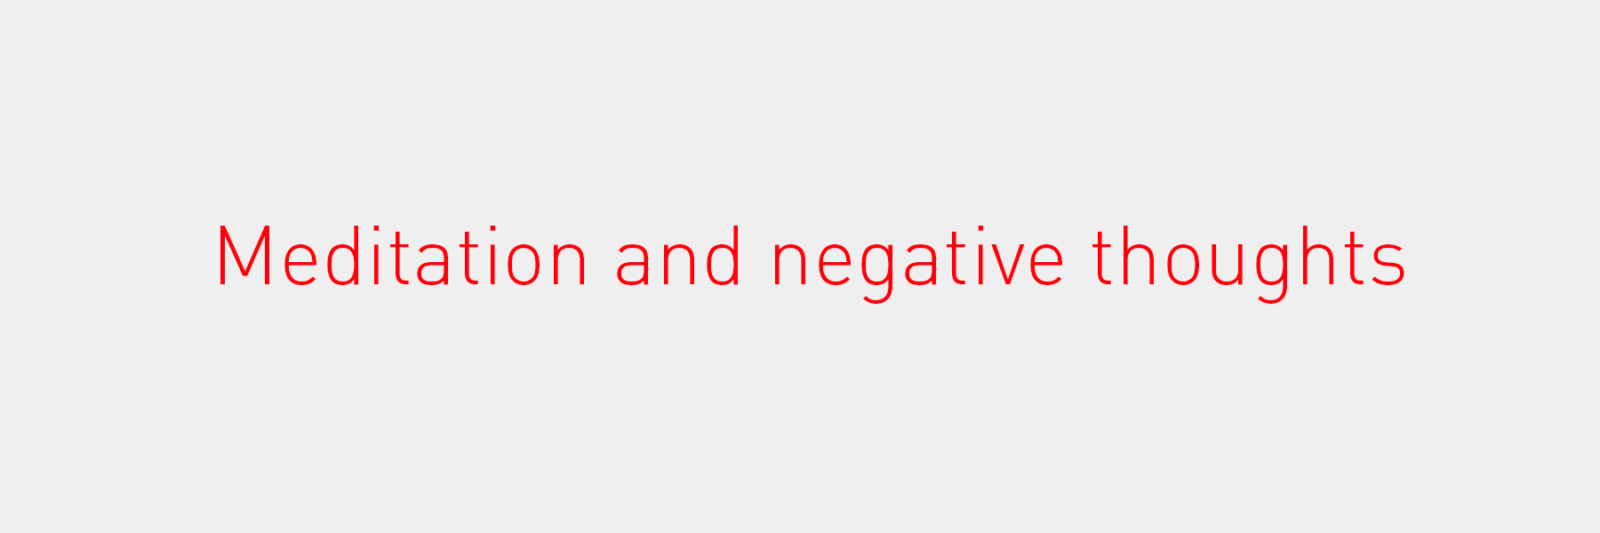 Meditation and negative thoughts